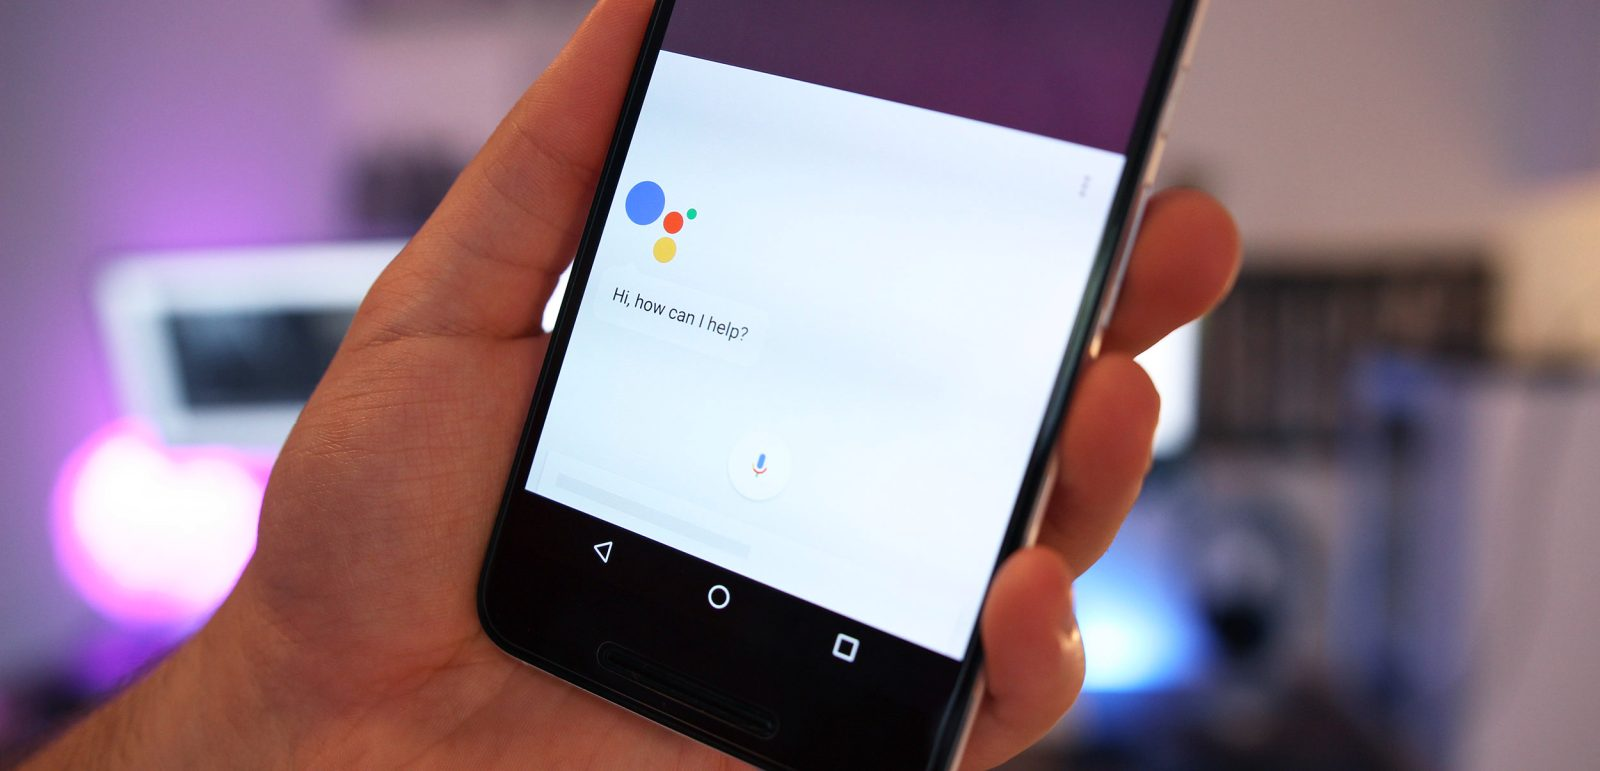 Google Assistant becomes Multilingual